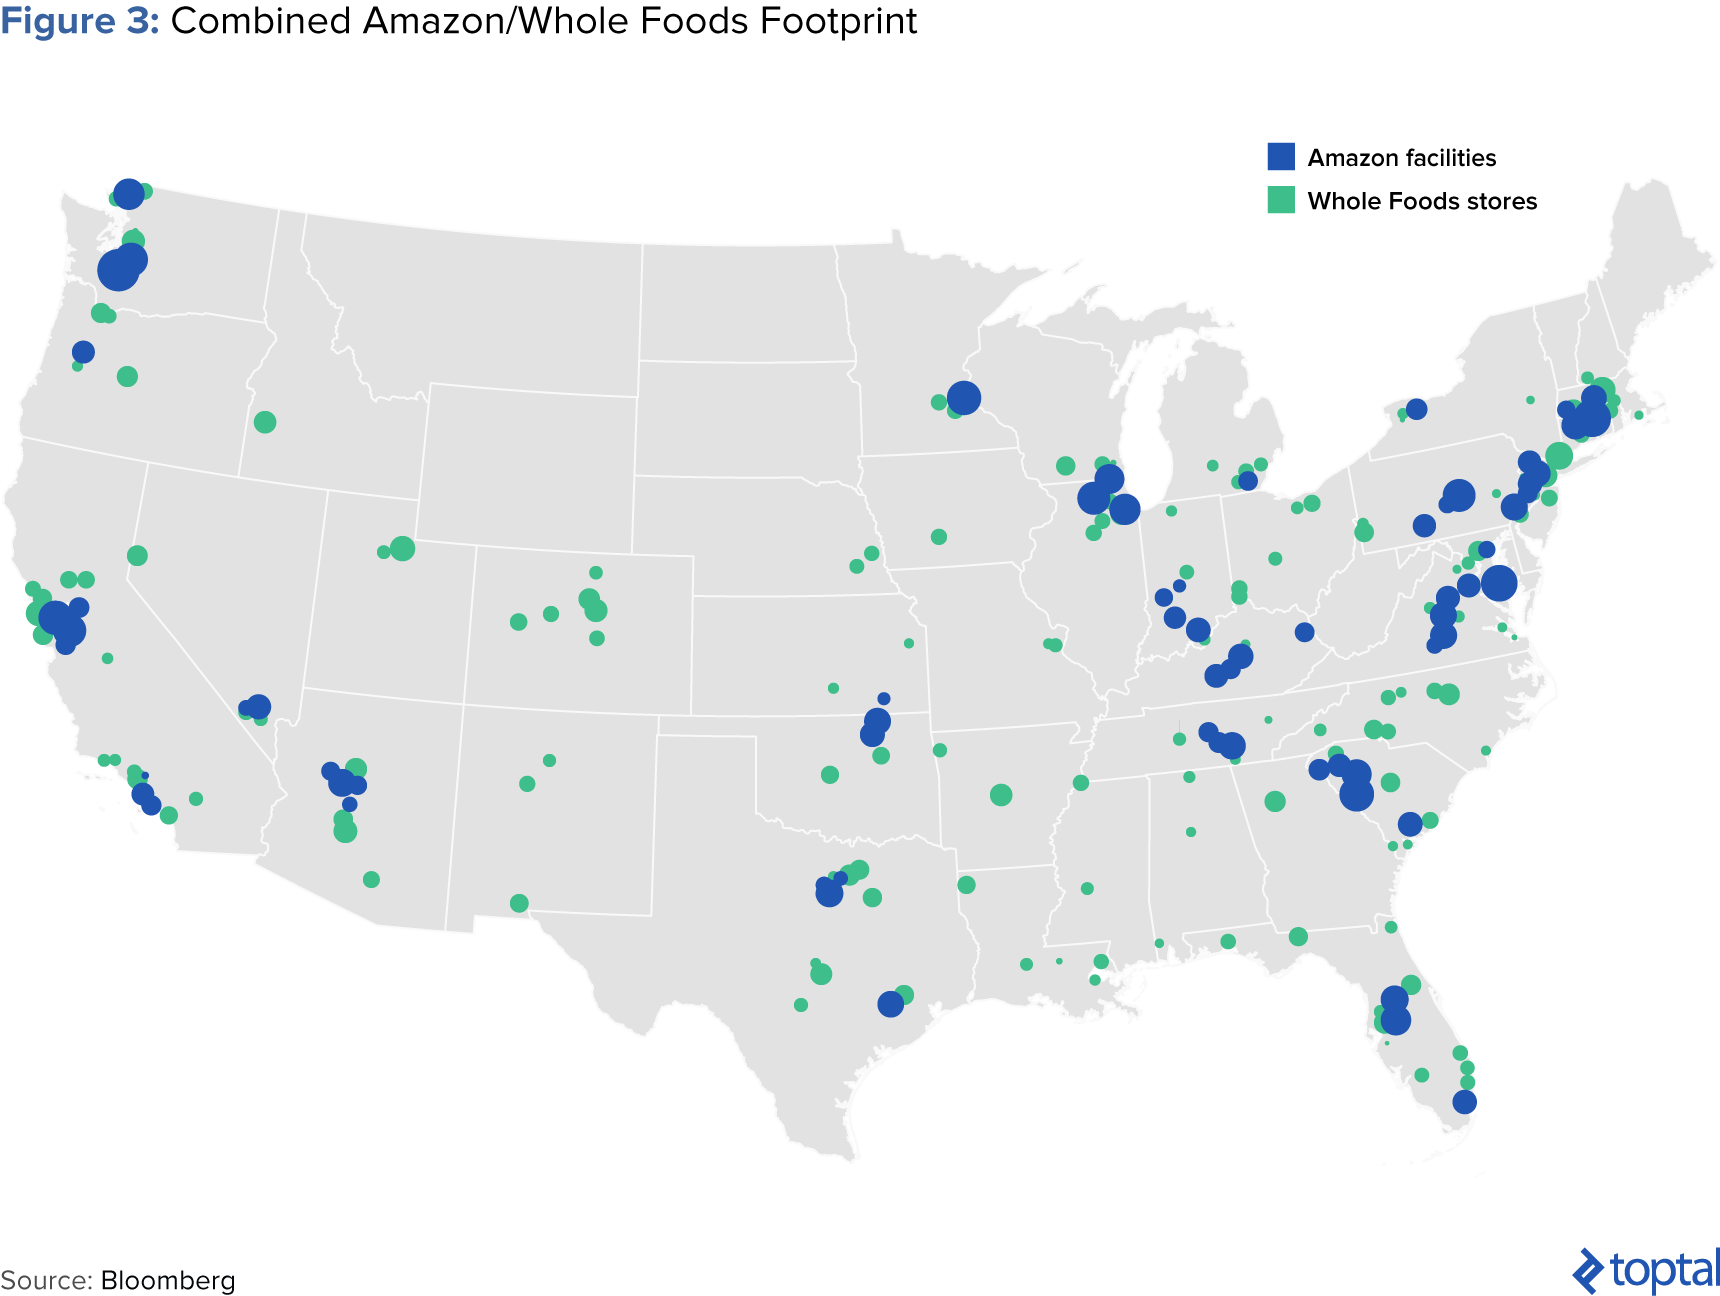 Figure 3: Combined Amazon/Whole Foods Footprint